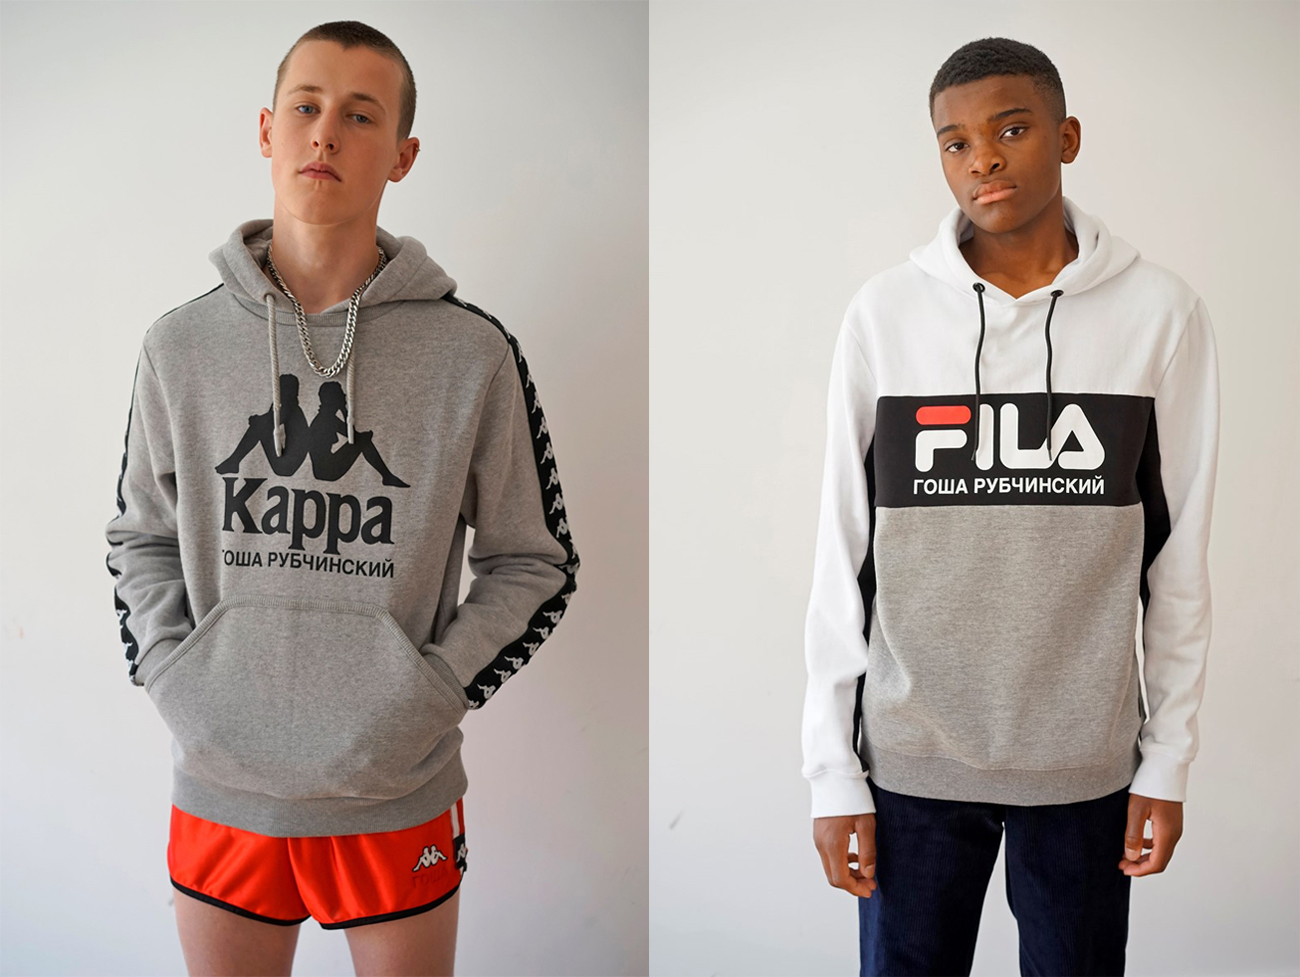 Gosha Rubchinskiy for Kappa and Fila. Images from ef.city.com